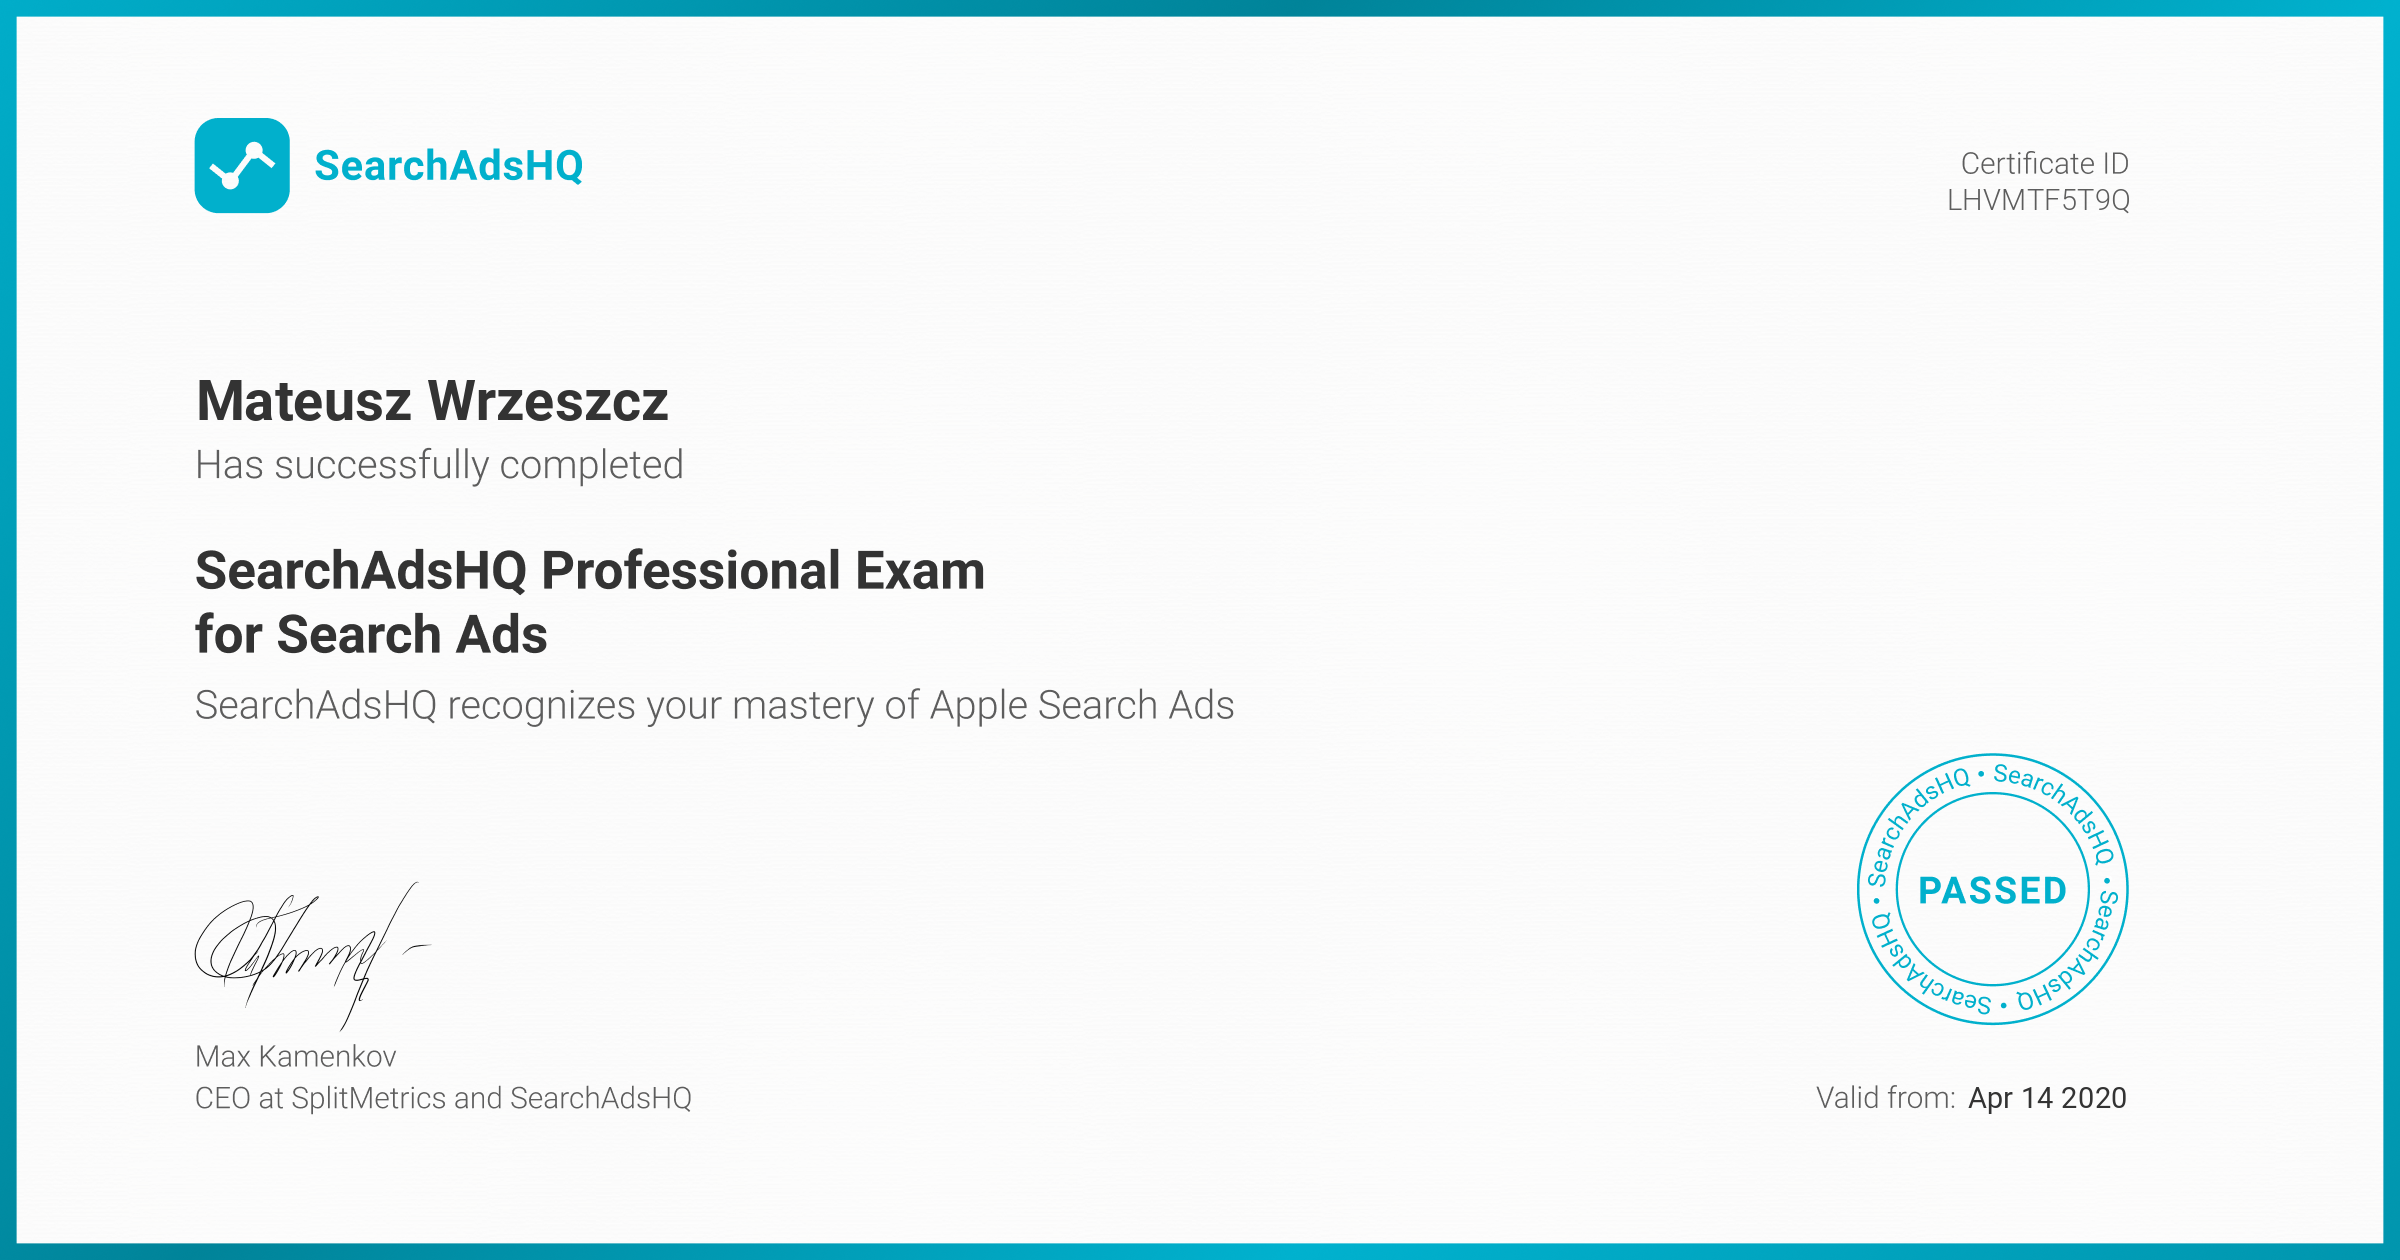 Certificate for Mateusz Wrzeszcz | SearchAdsHQ Professional Exam for Search Ads